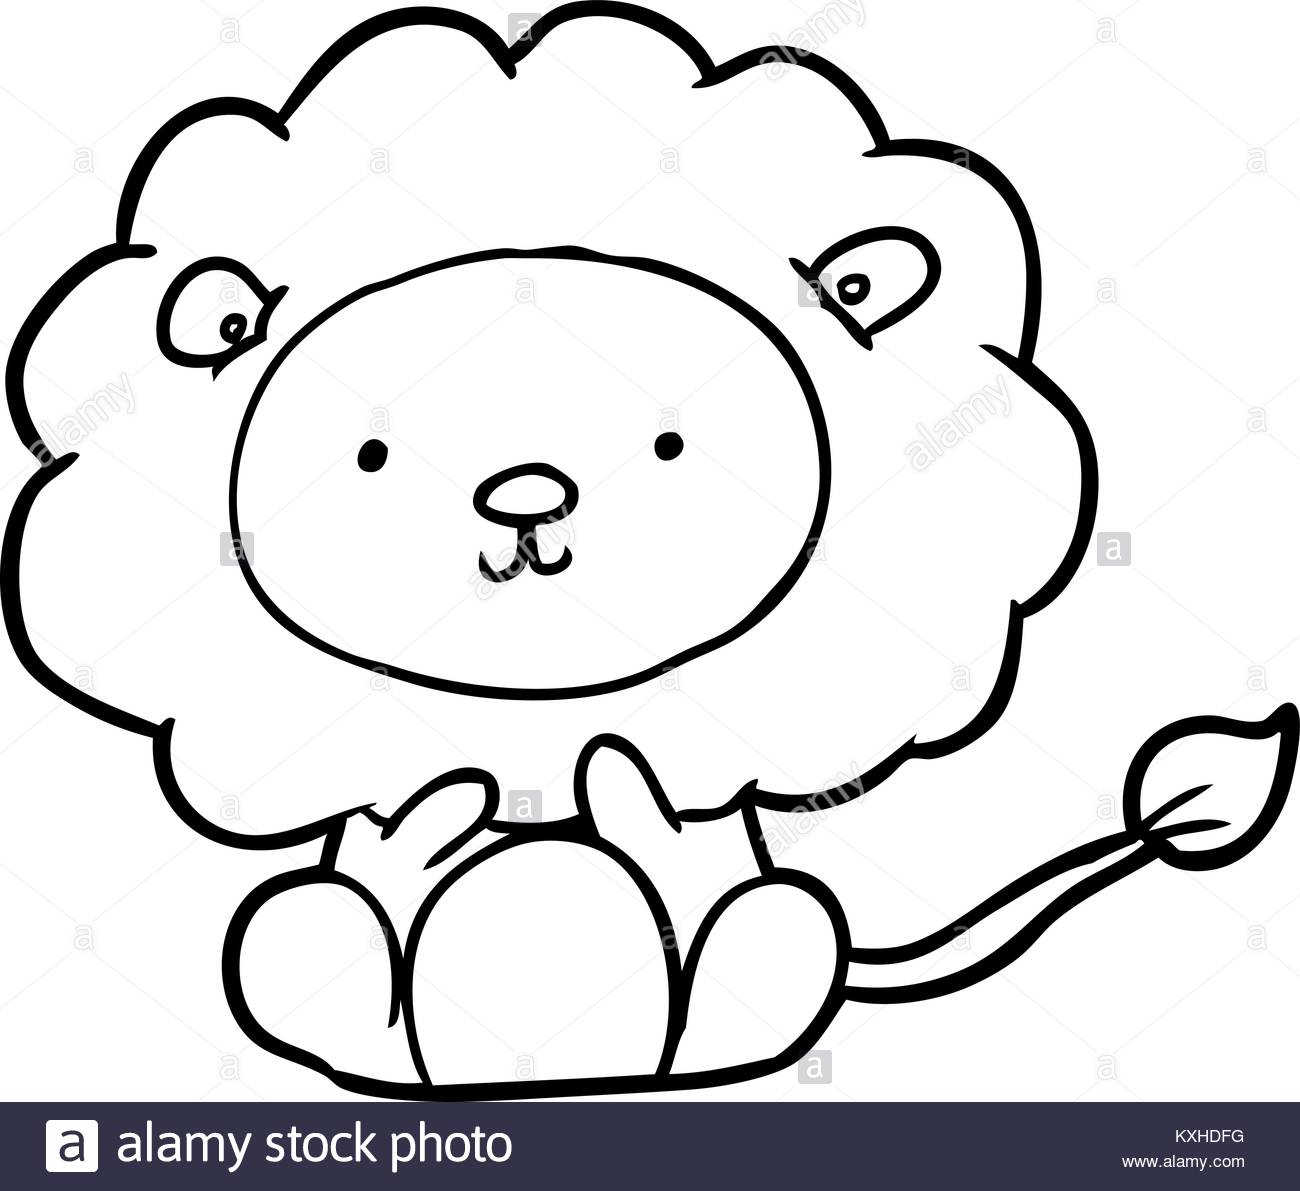 1300x1191 Drawing Lion Stock Photos Amp Drawing Lion Stock Images